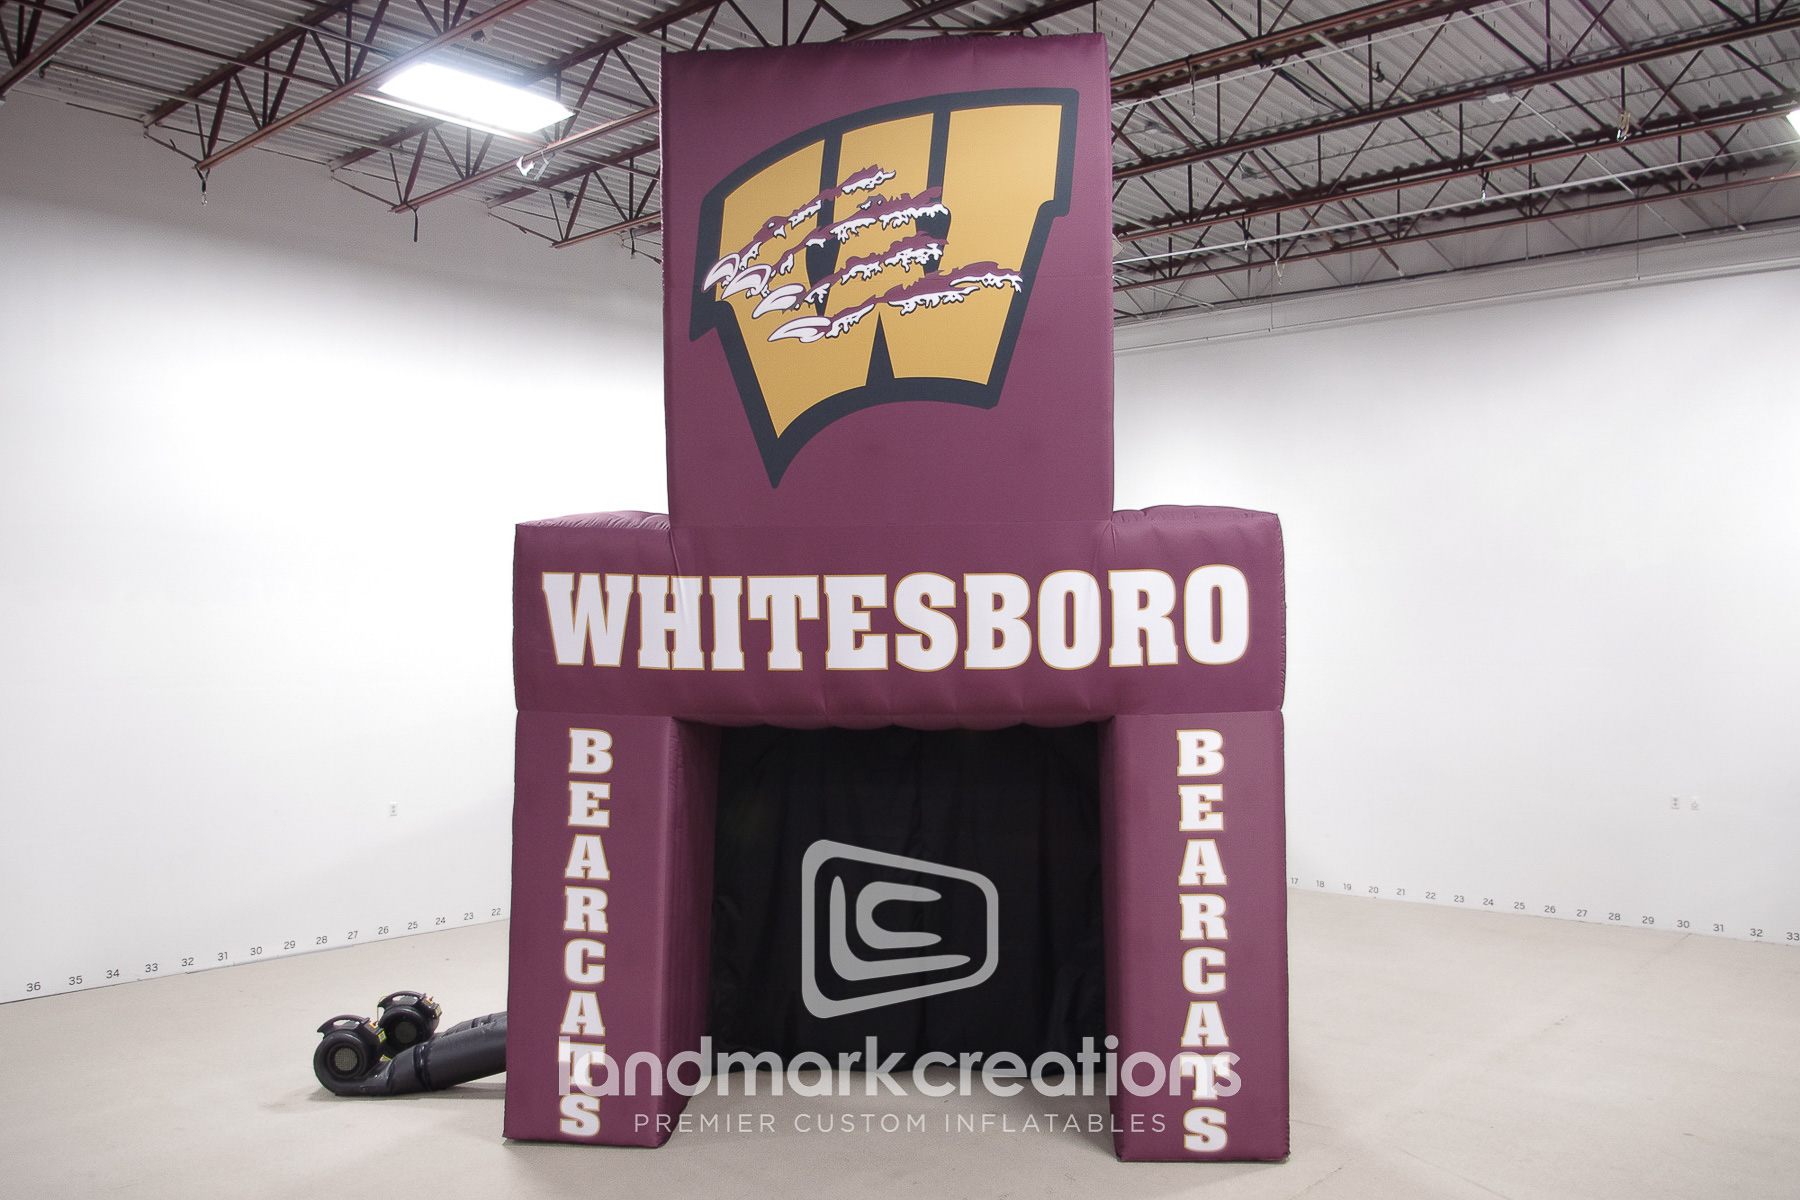 Whitesboro BearcatsTunnel